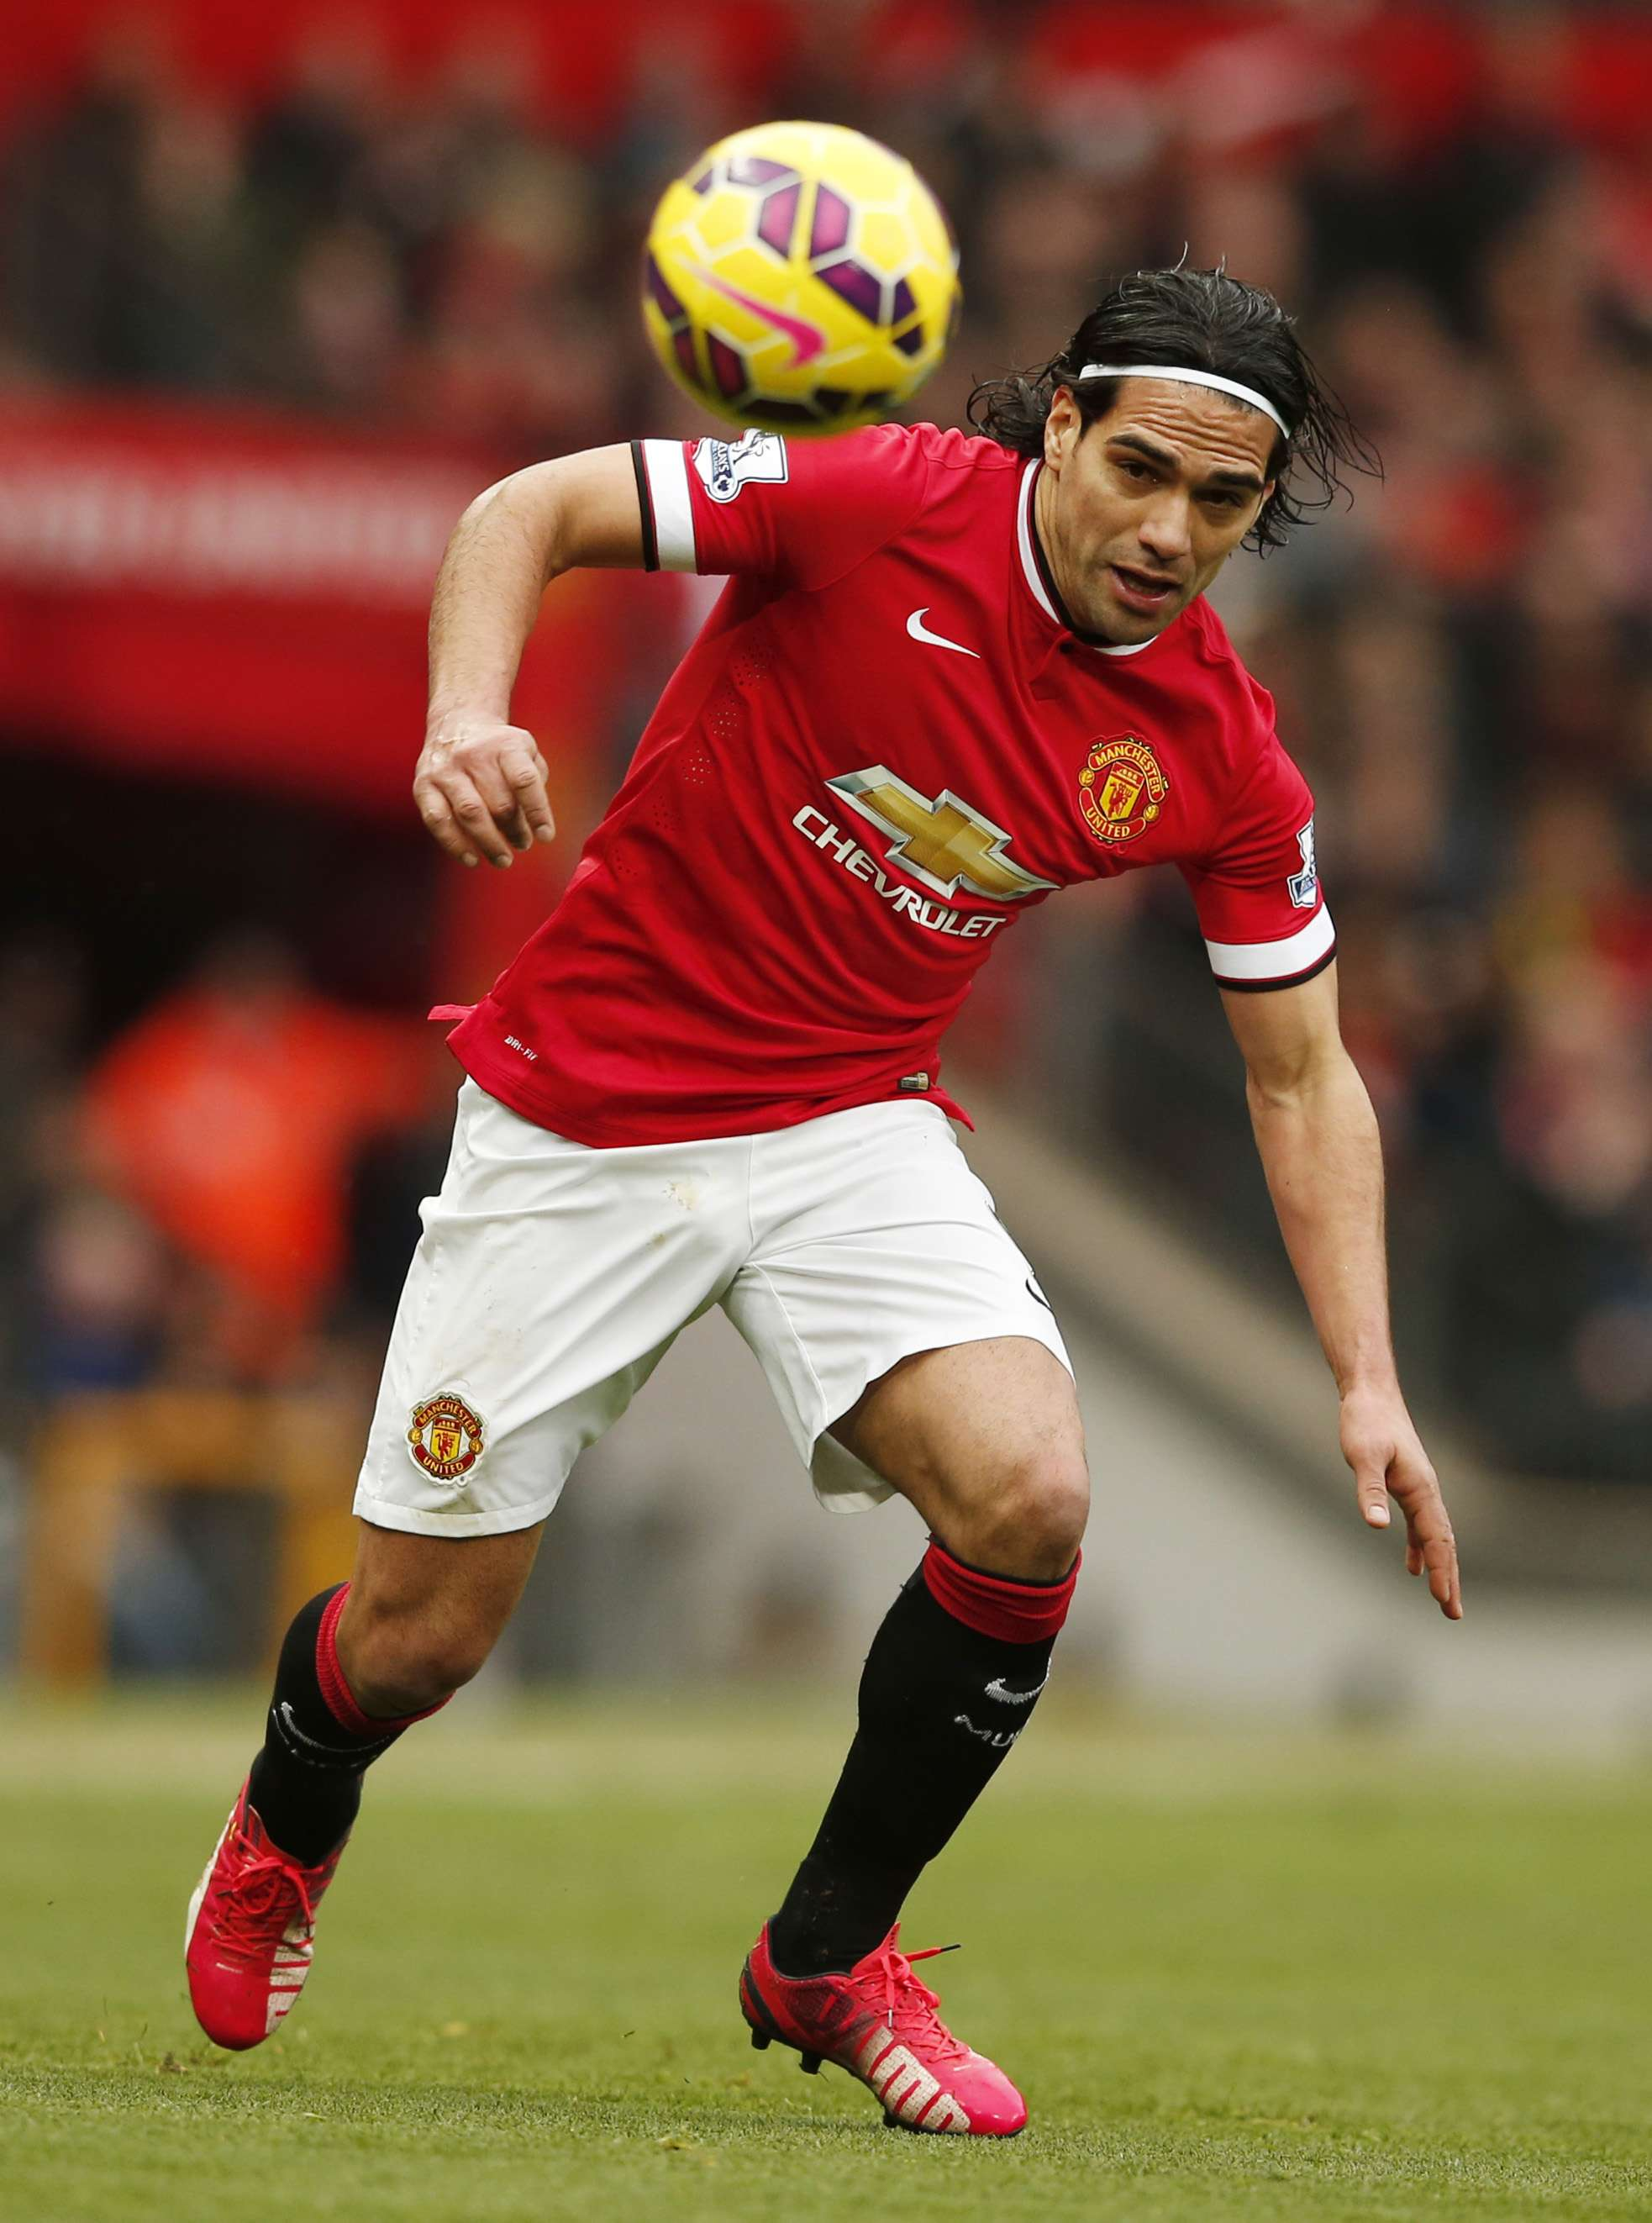 "Football - Manchester United v Sunderland - Barclays Premier League - Old Trafford - 28/2/15 Manchester United's Radamel Falcao in action Reuters / Phil Noble Livepic EDITORIAL USE ONLY. No use with unauthorized audio, video, data, fixture lists, club/league logos or ""live"" services. Online in-match use limited to 45 images, no video emulation. No use in betting, games or single club/league/player publications. Please contact your account representative for further details. Foto: Phil Noble/REUTERS"